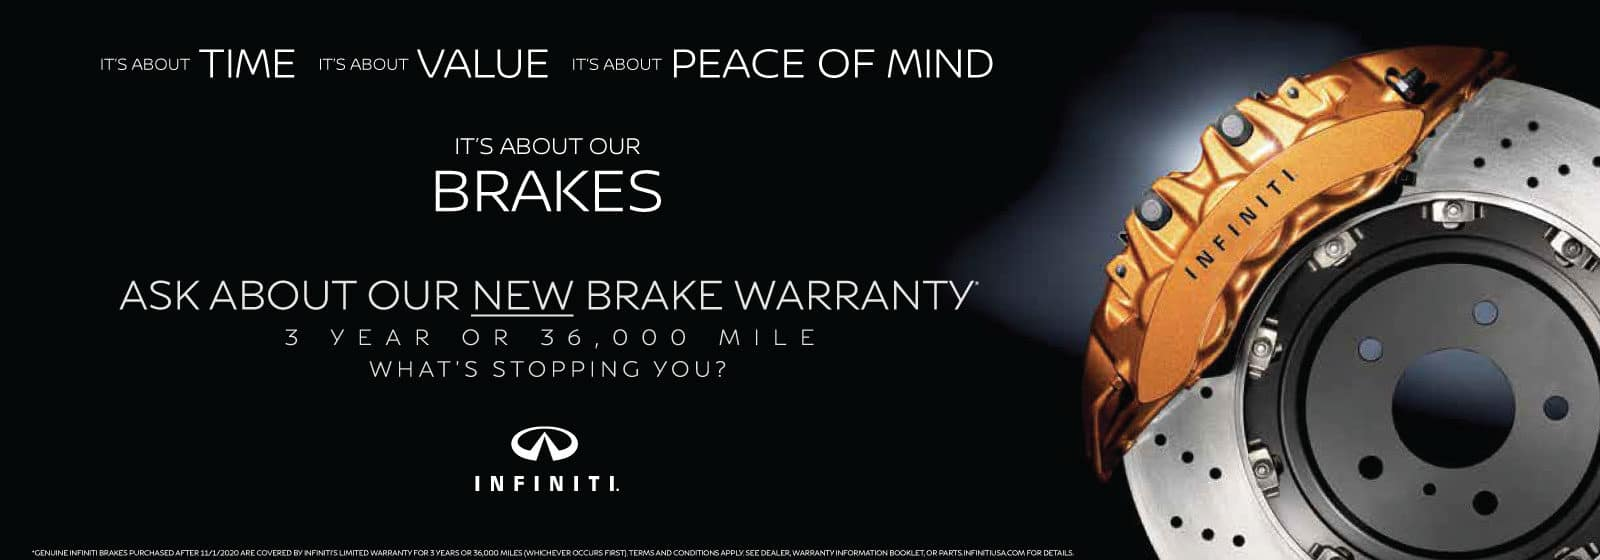 It's about TIME. It's about VALUE. IT's about PEACE OF MIND. It's about our BRAKES. Ask about our new brake warranty. 3 years or 36,000 mile. What's stopping you?